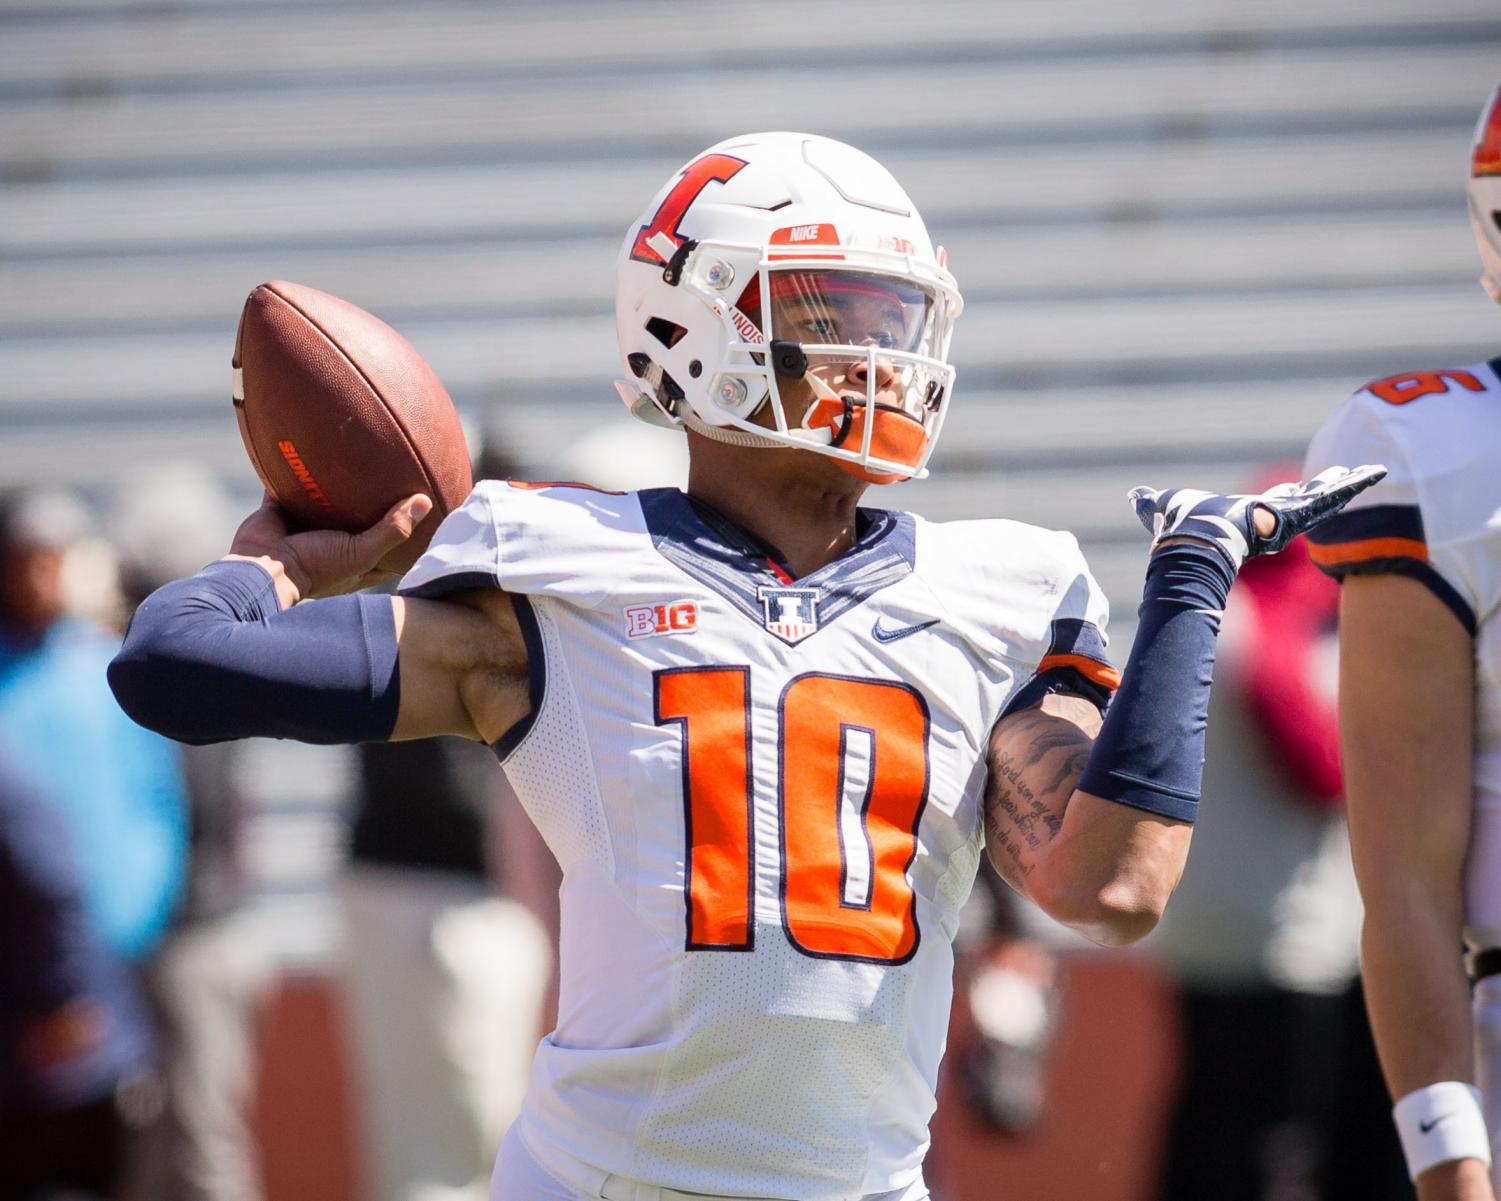 Illinois football held an open spring practice on Sunday. Community members came to watch the team run through practice drills and a scrimmage.